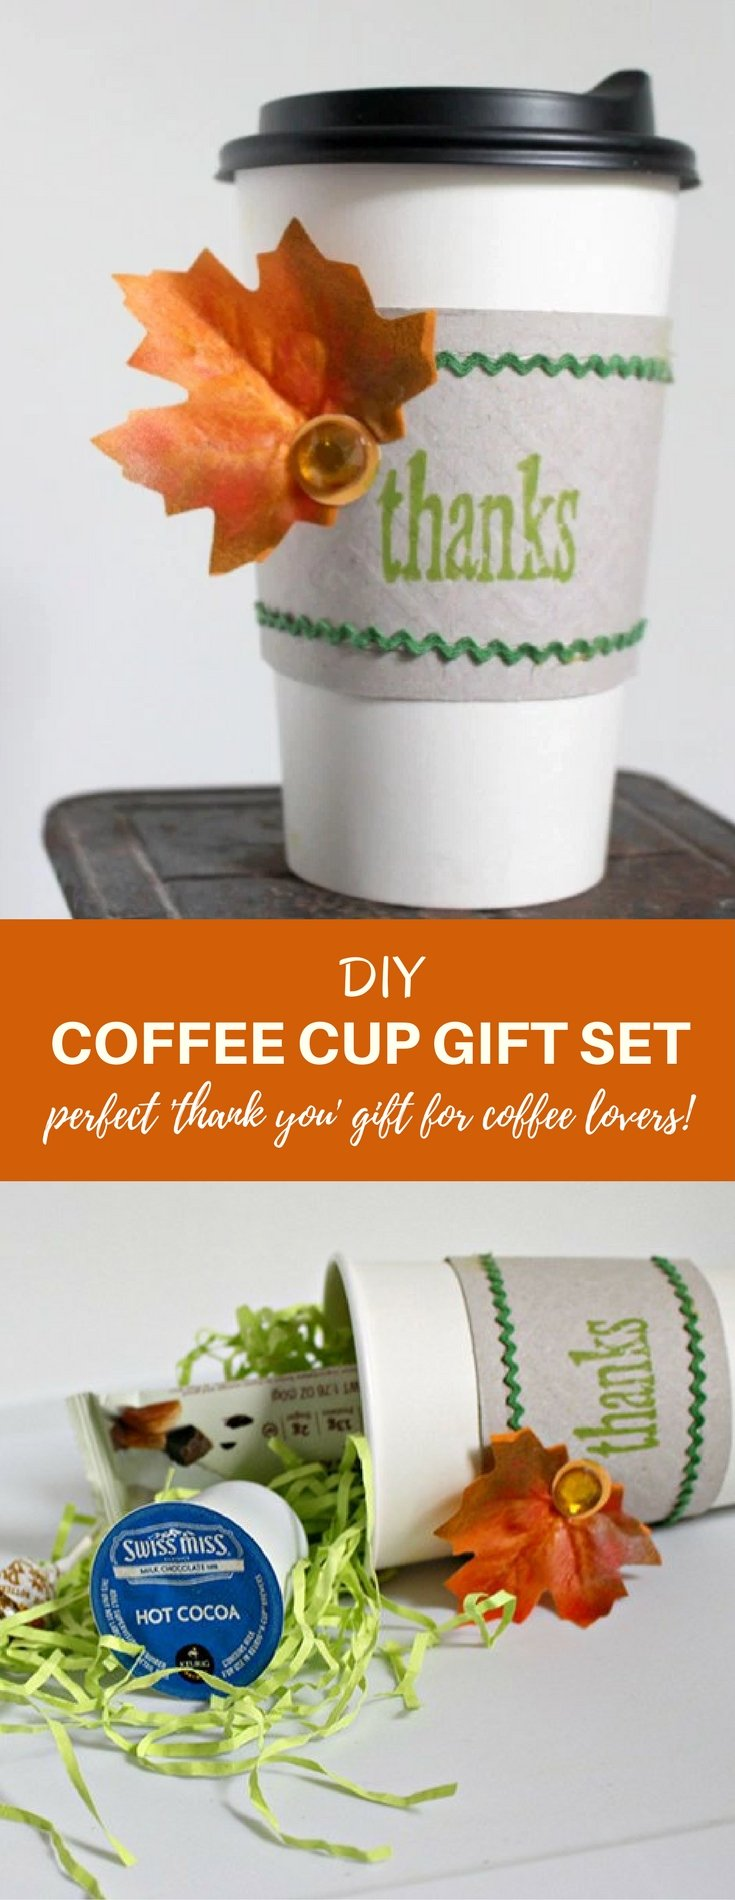 DIY coffee cup gift set is the perfect thank you all the coffee lovers on your list. Make from supplies you can find at your neighborhood Dollar Store and fill with coffee gift cards, hot cocoa packets, K-cups and sweet treats!